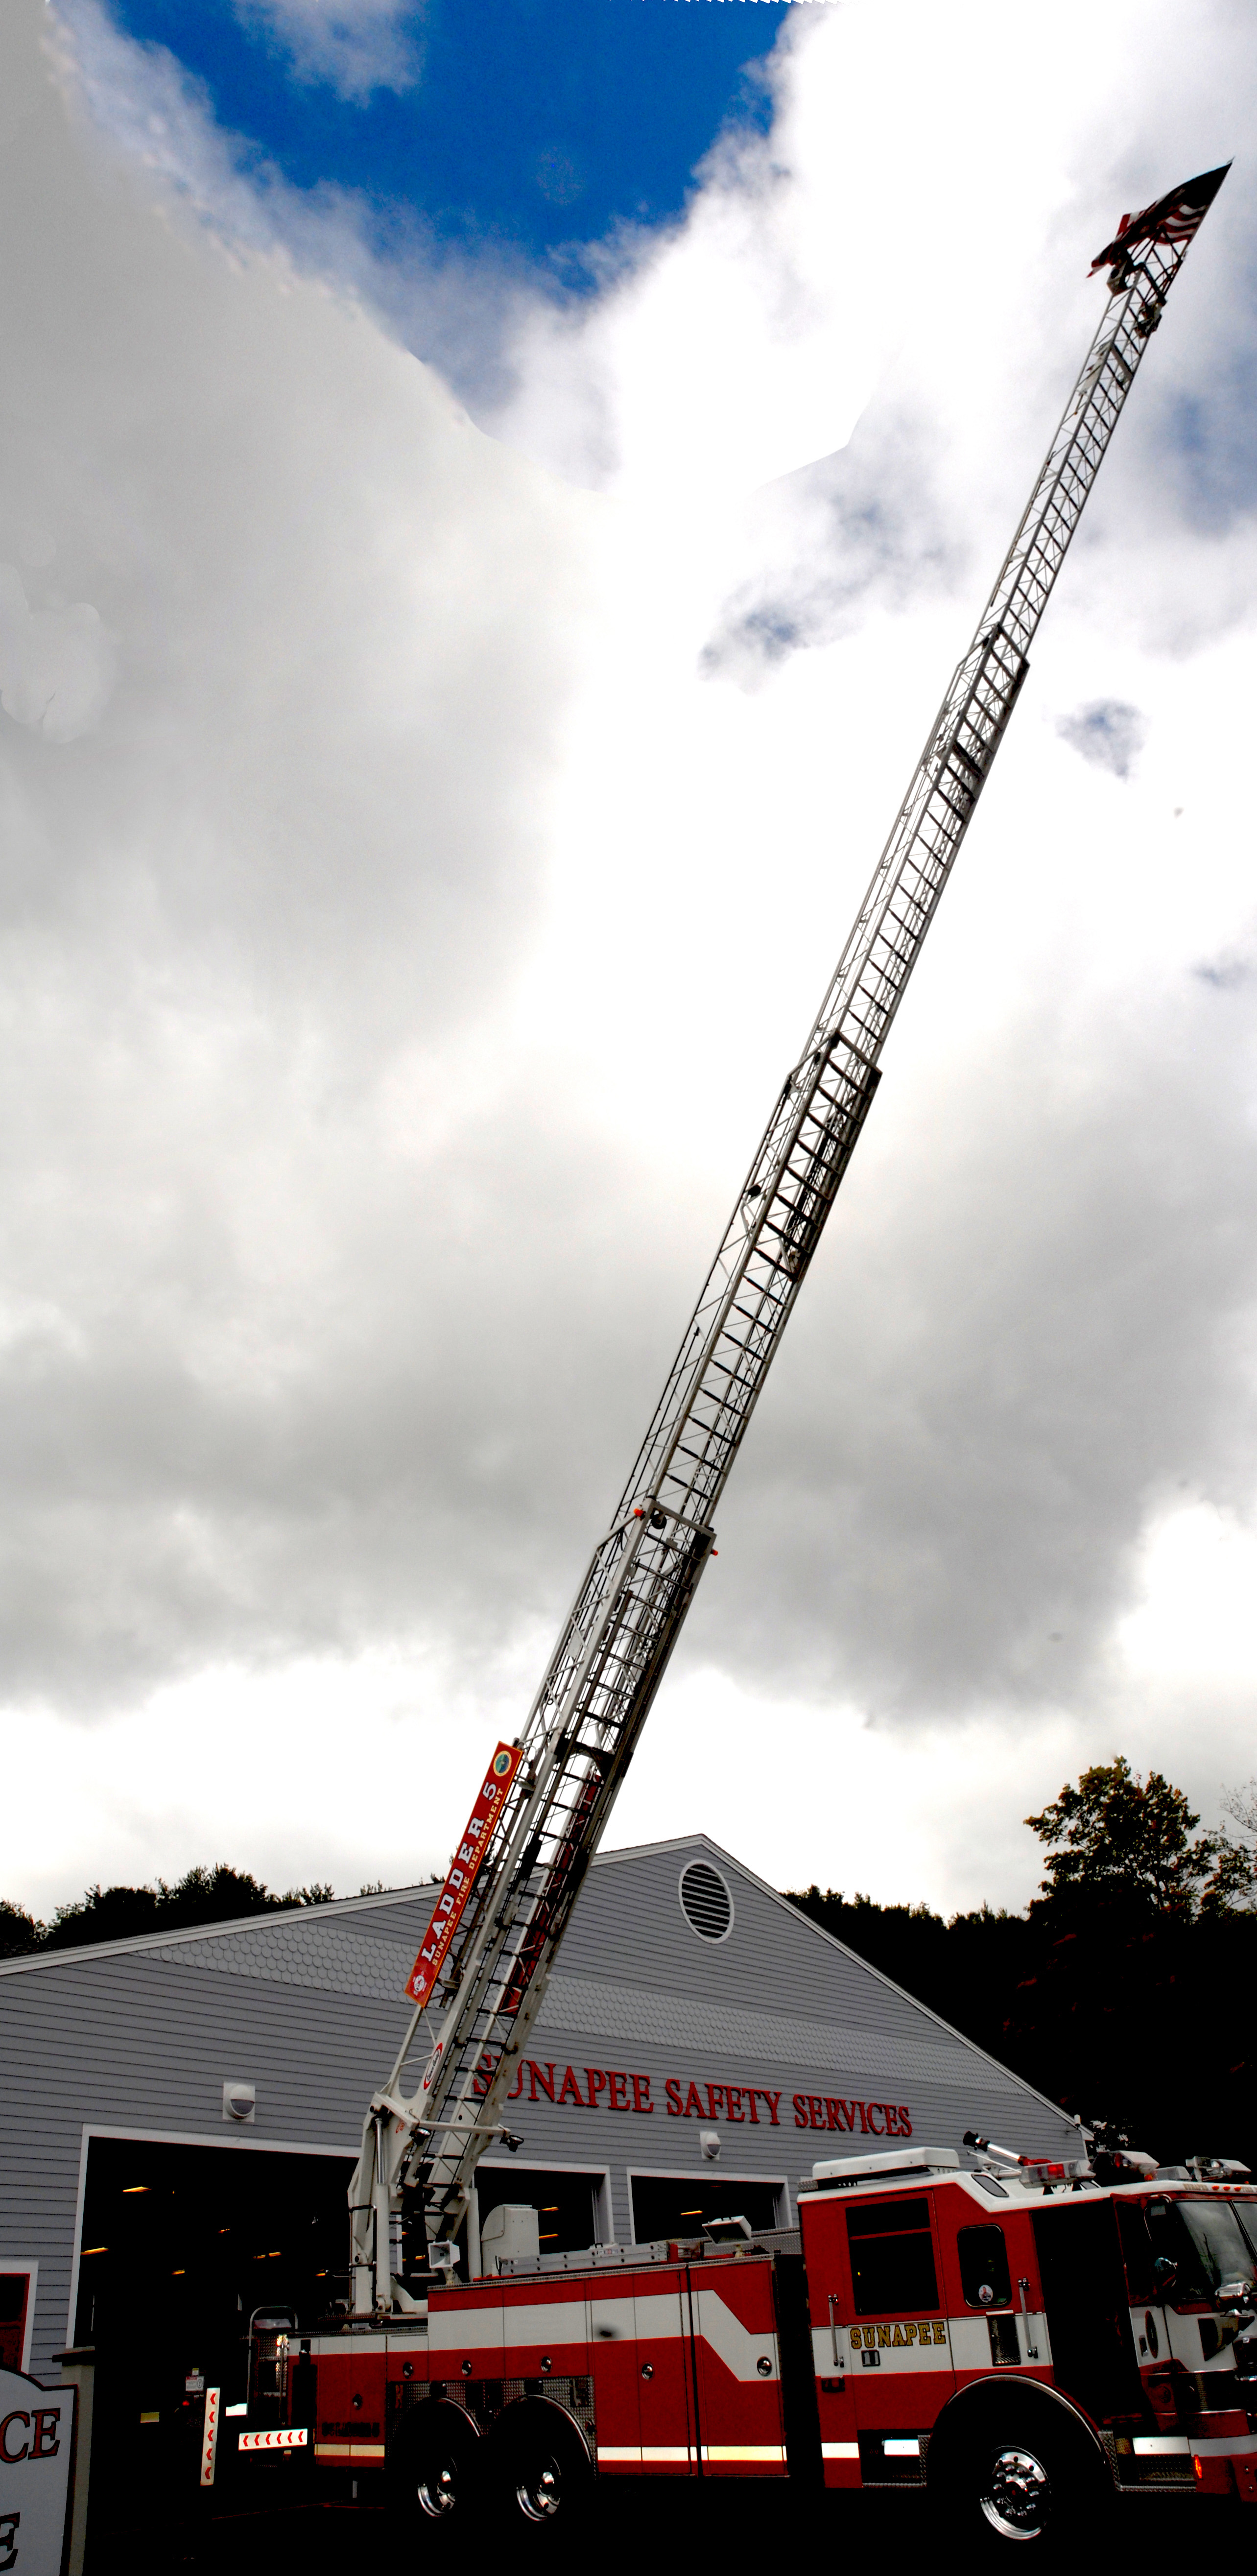 sunapee s 100 foot ladder in new hampshire image free stock photo